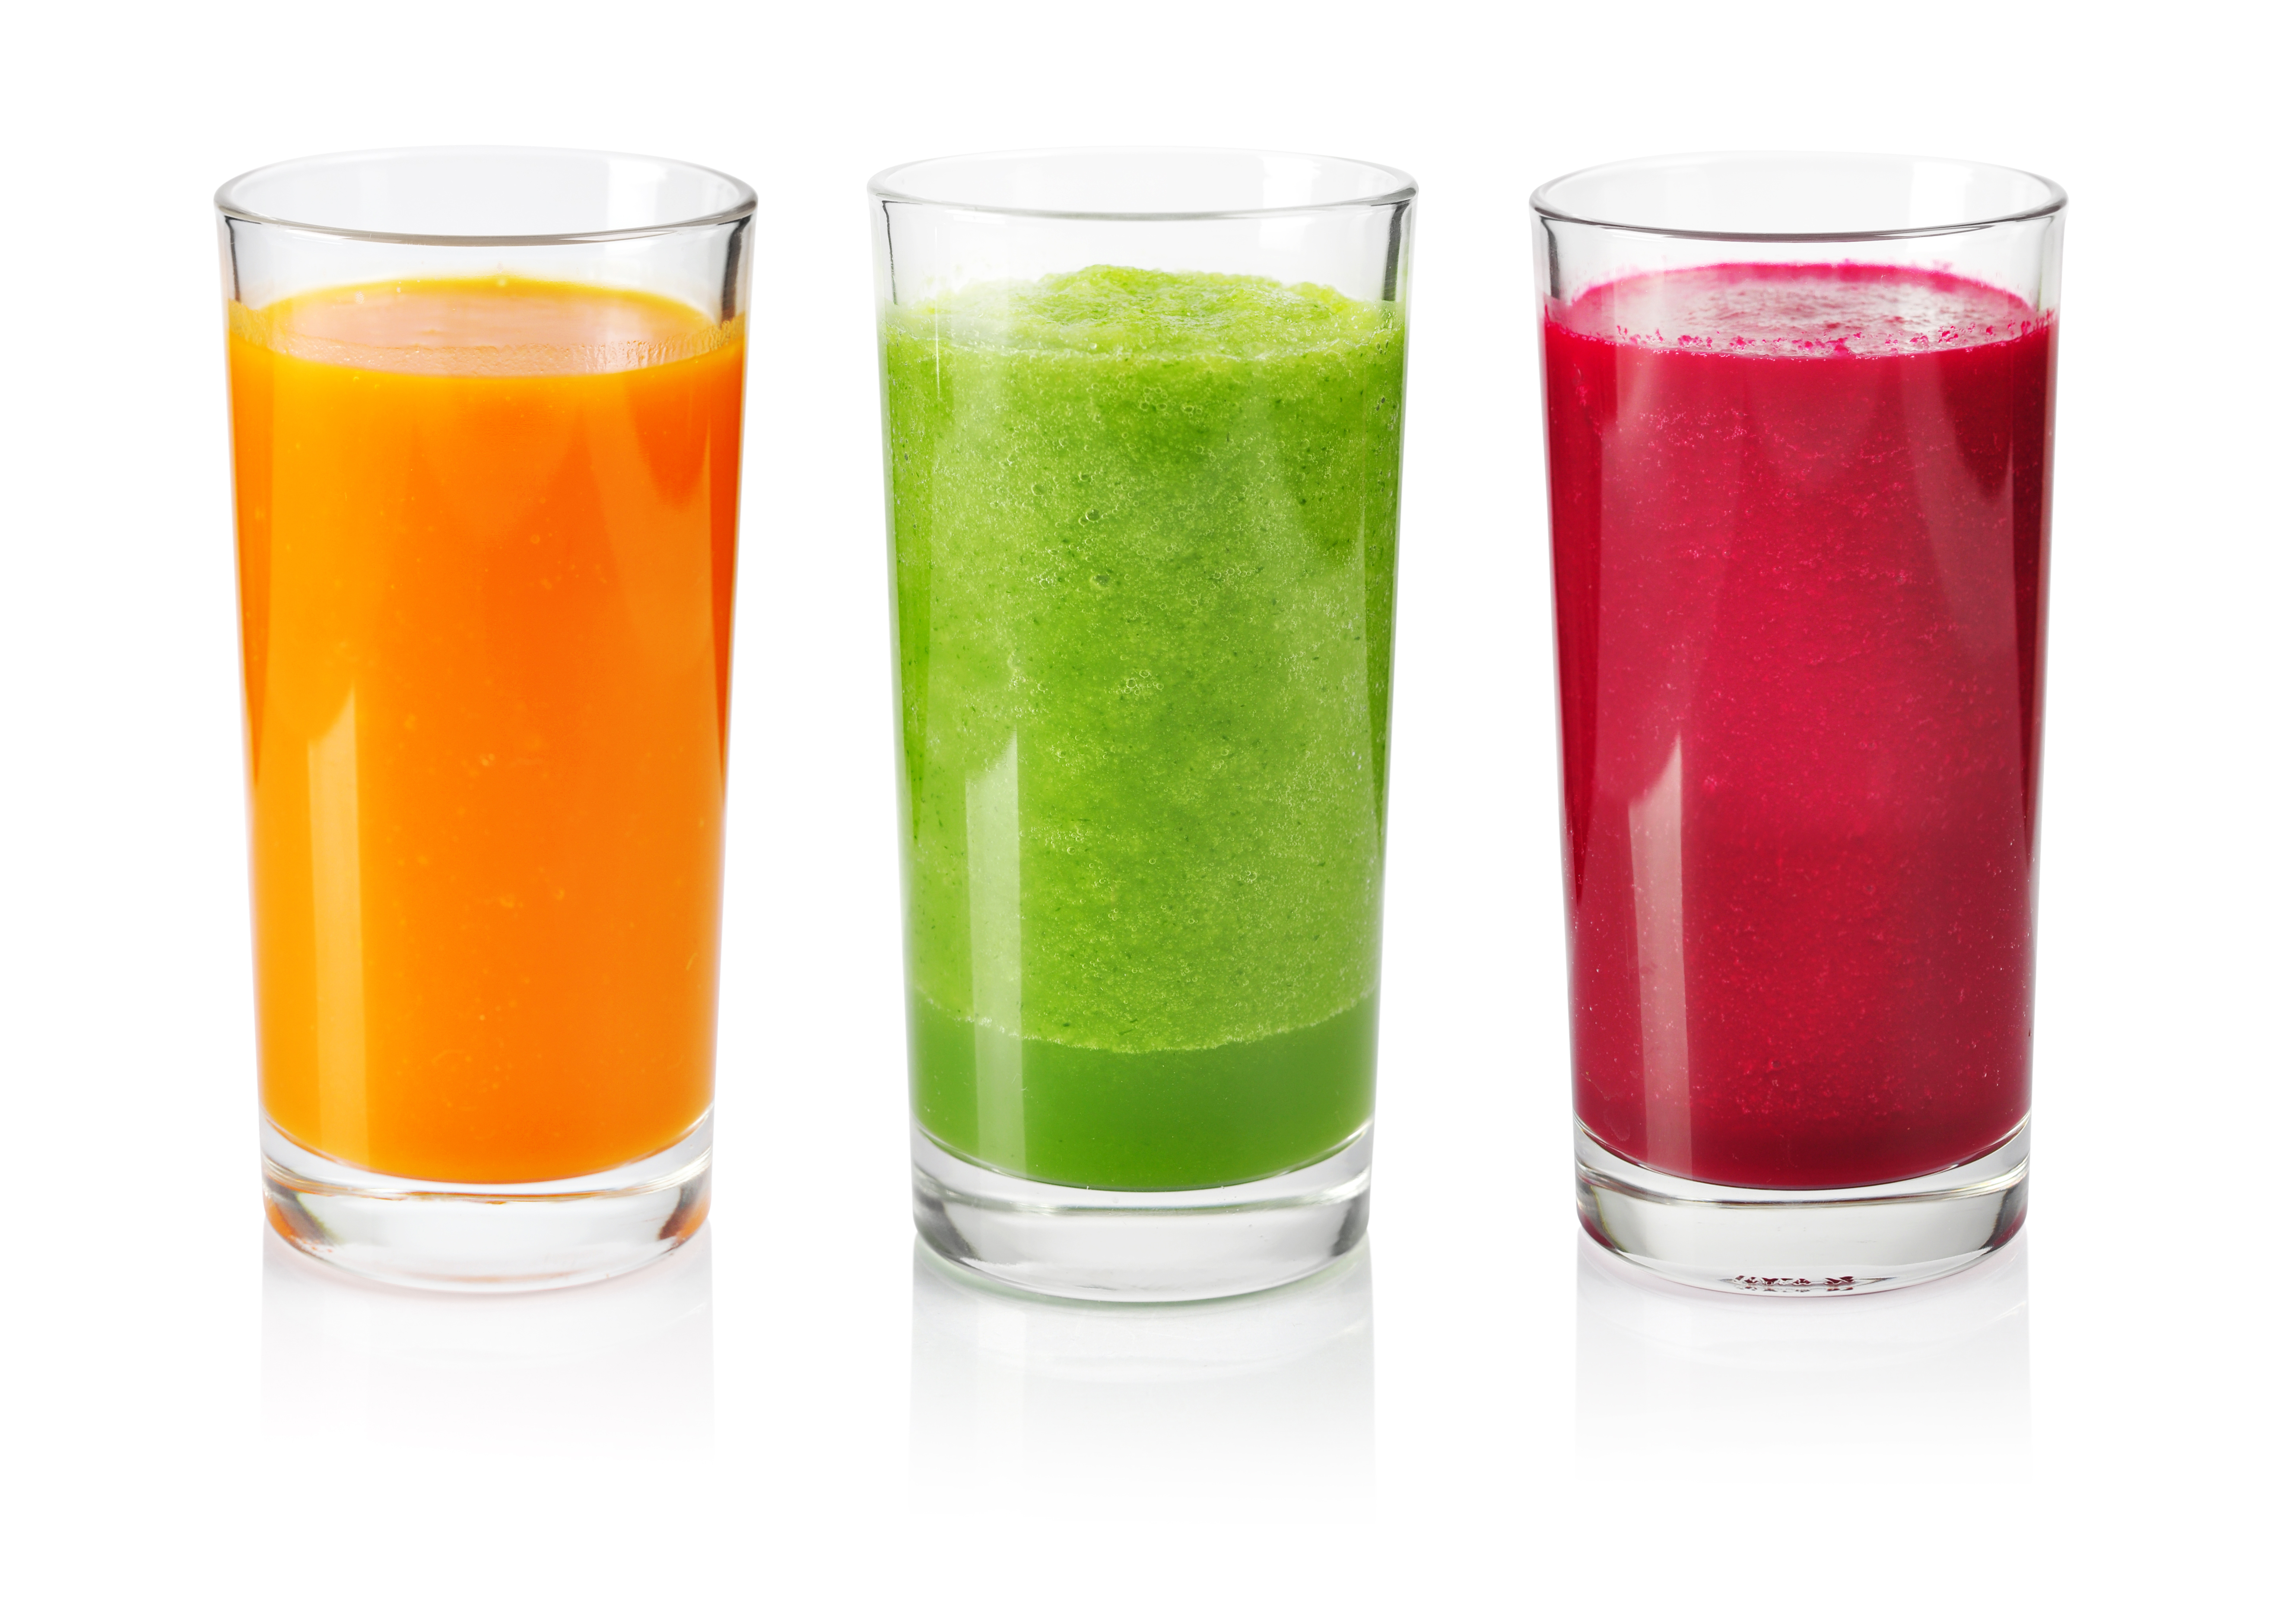 their interpretation of Juice is for you ...